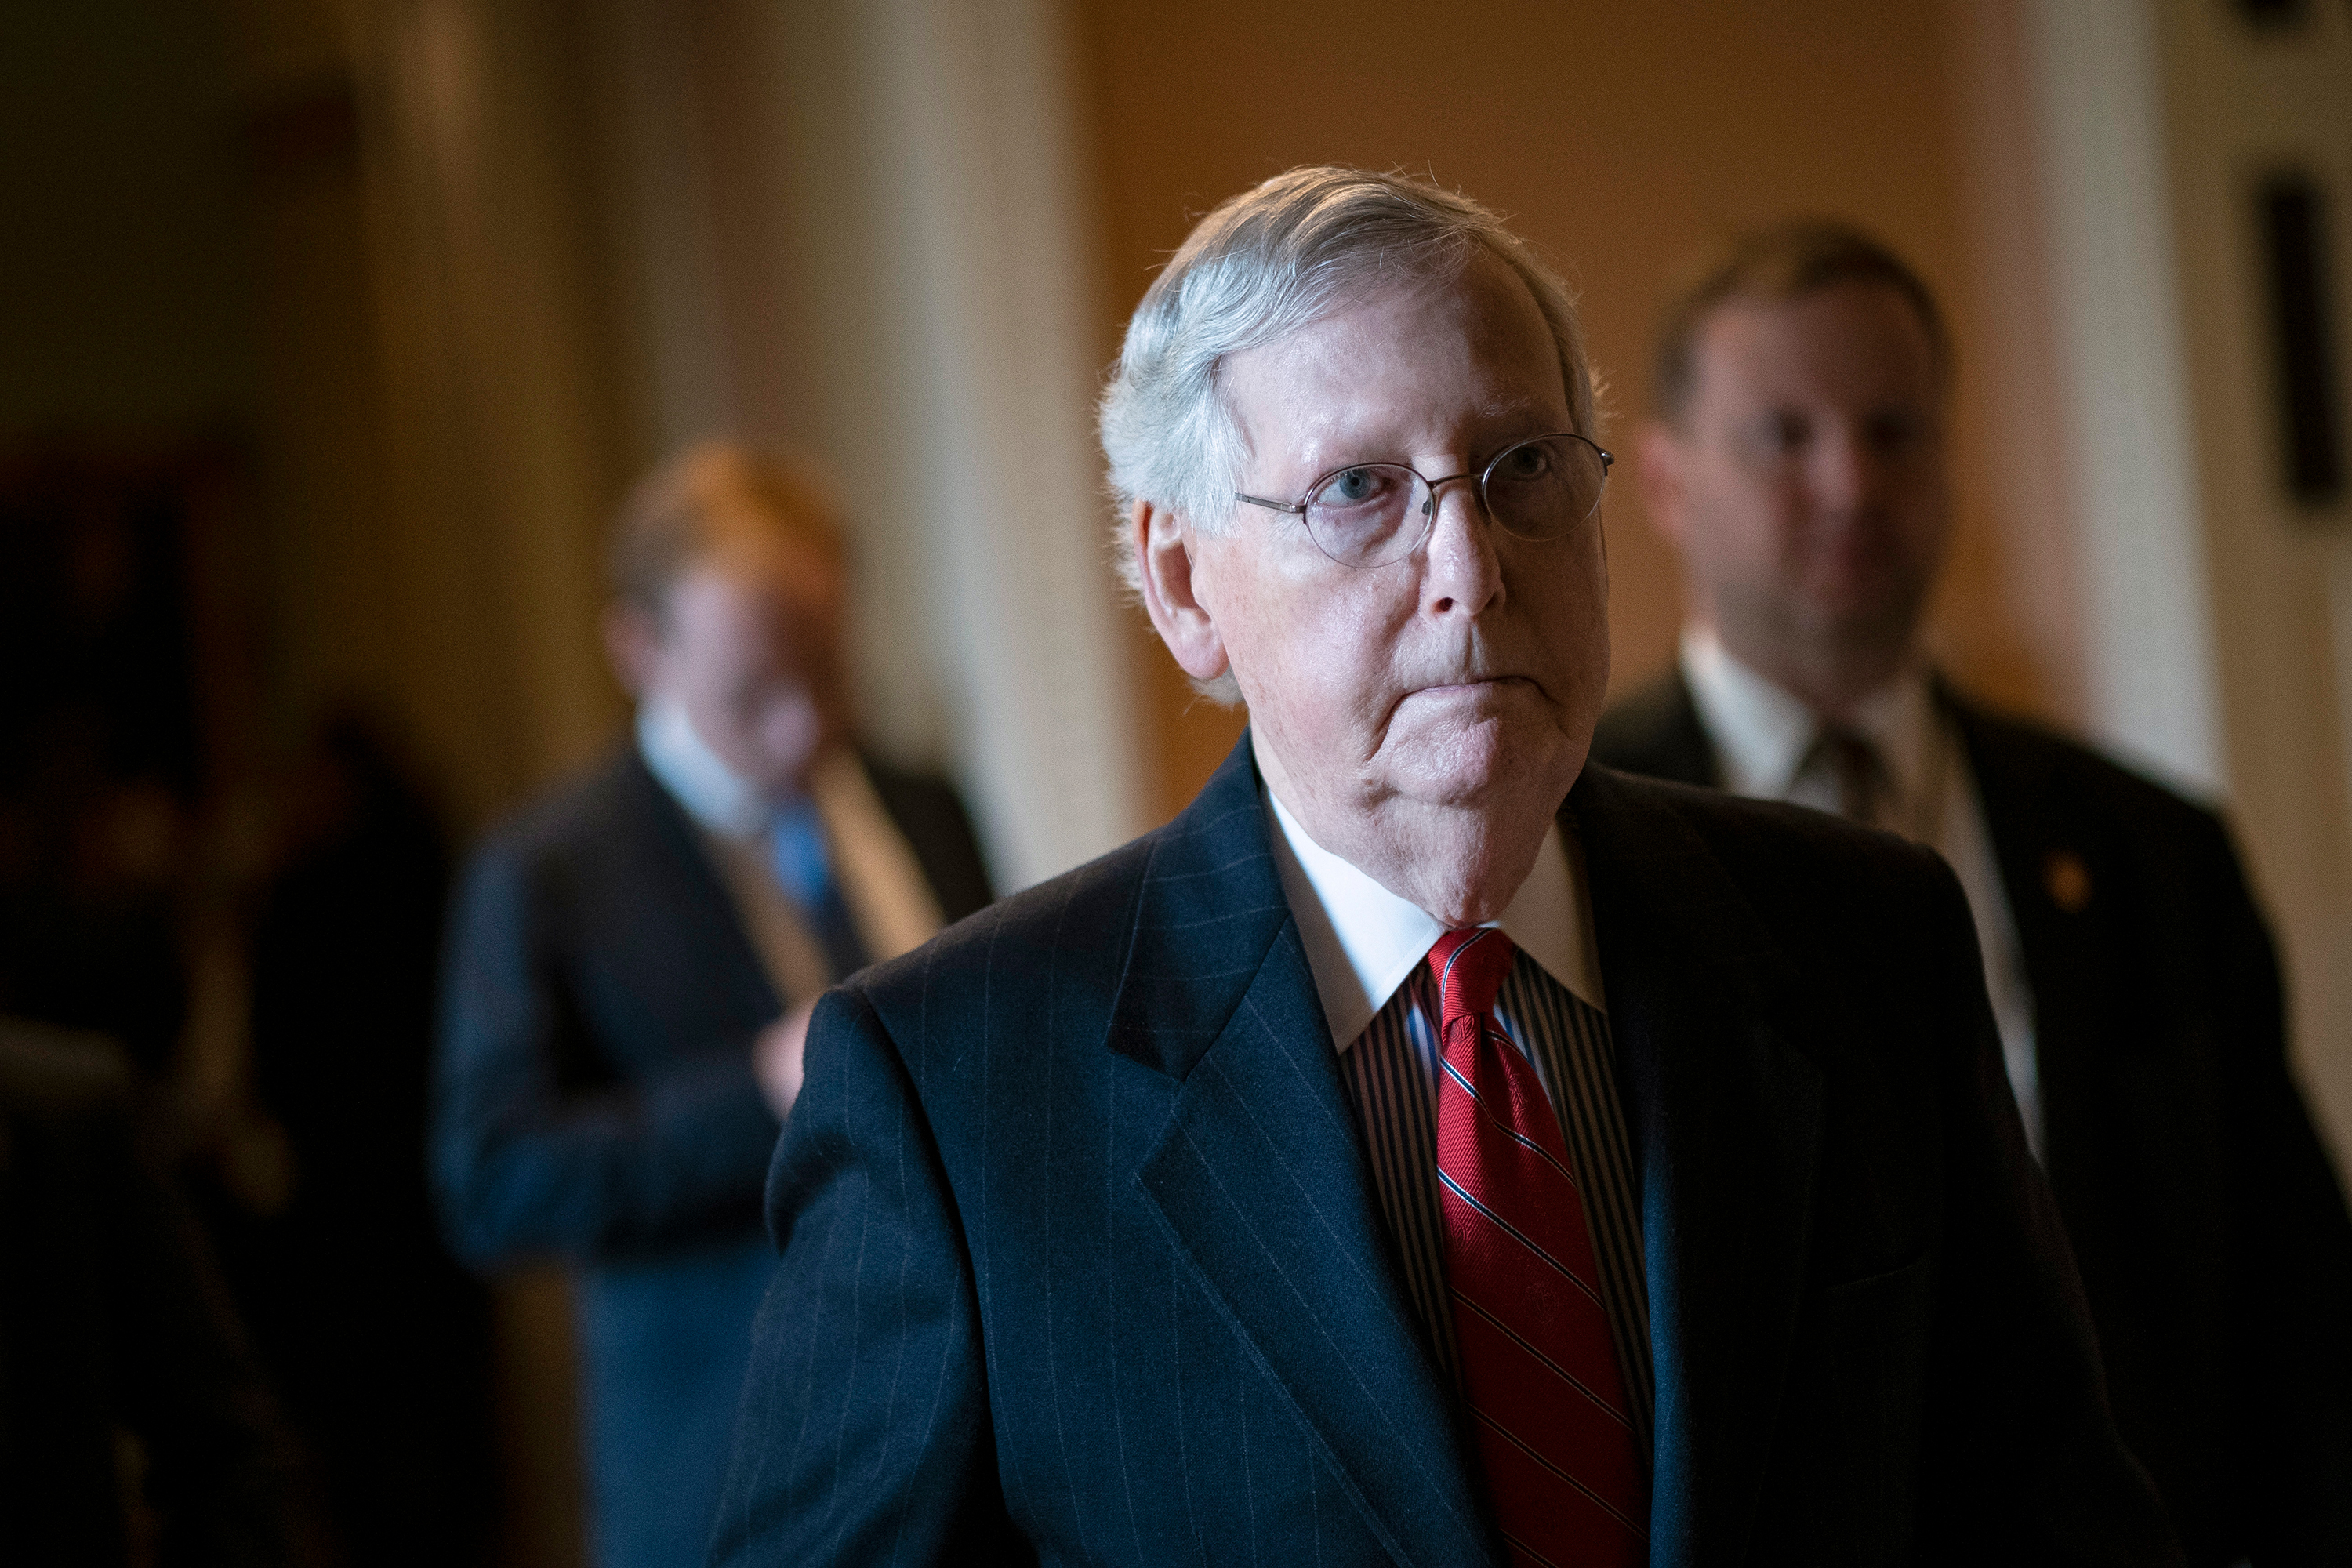 2 GOP senators say McConnell will move to acquit Trump, not merely dismiss charges